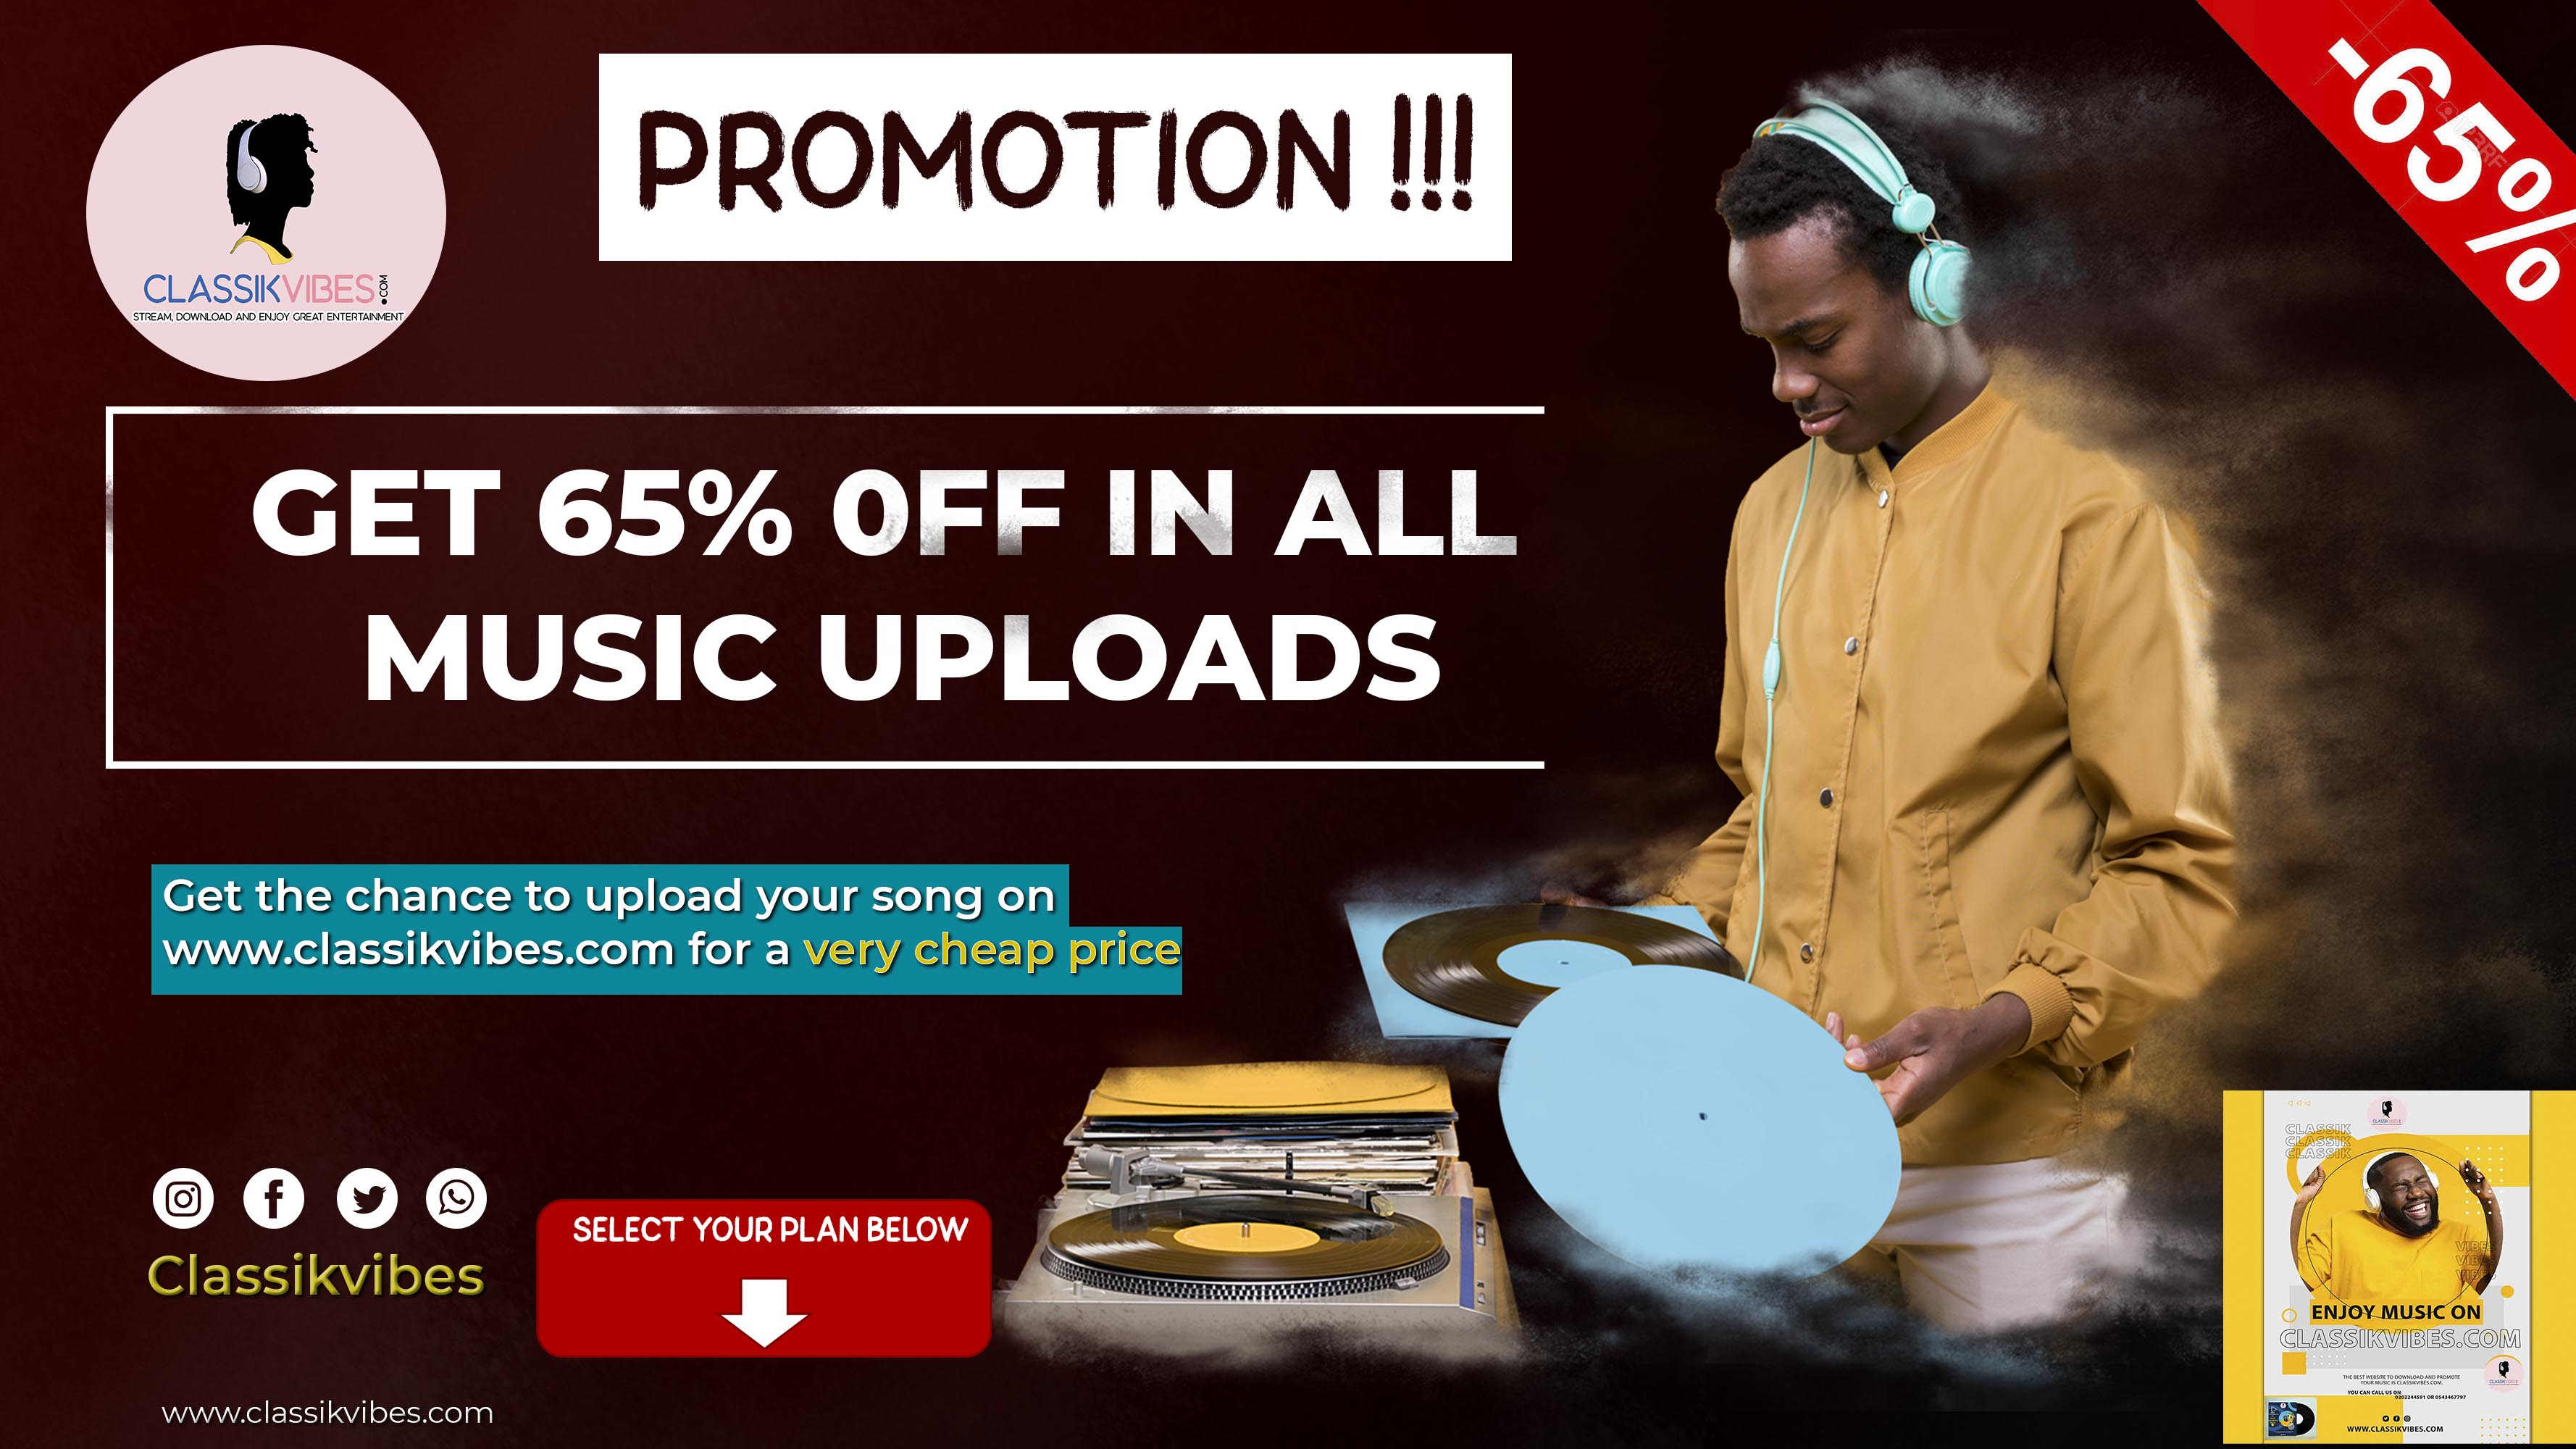 Promote your music on classikvibes for only 30gh